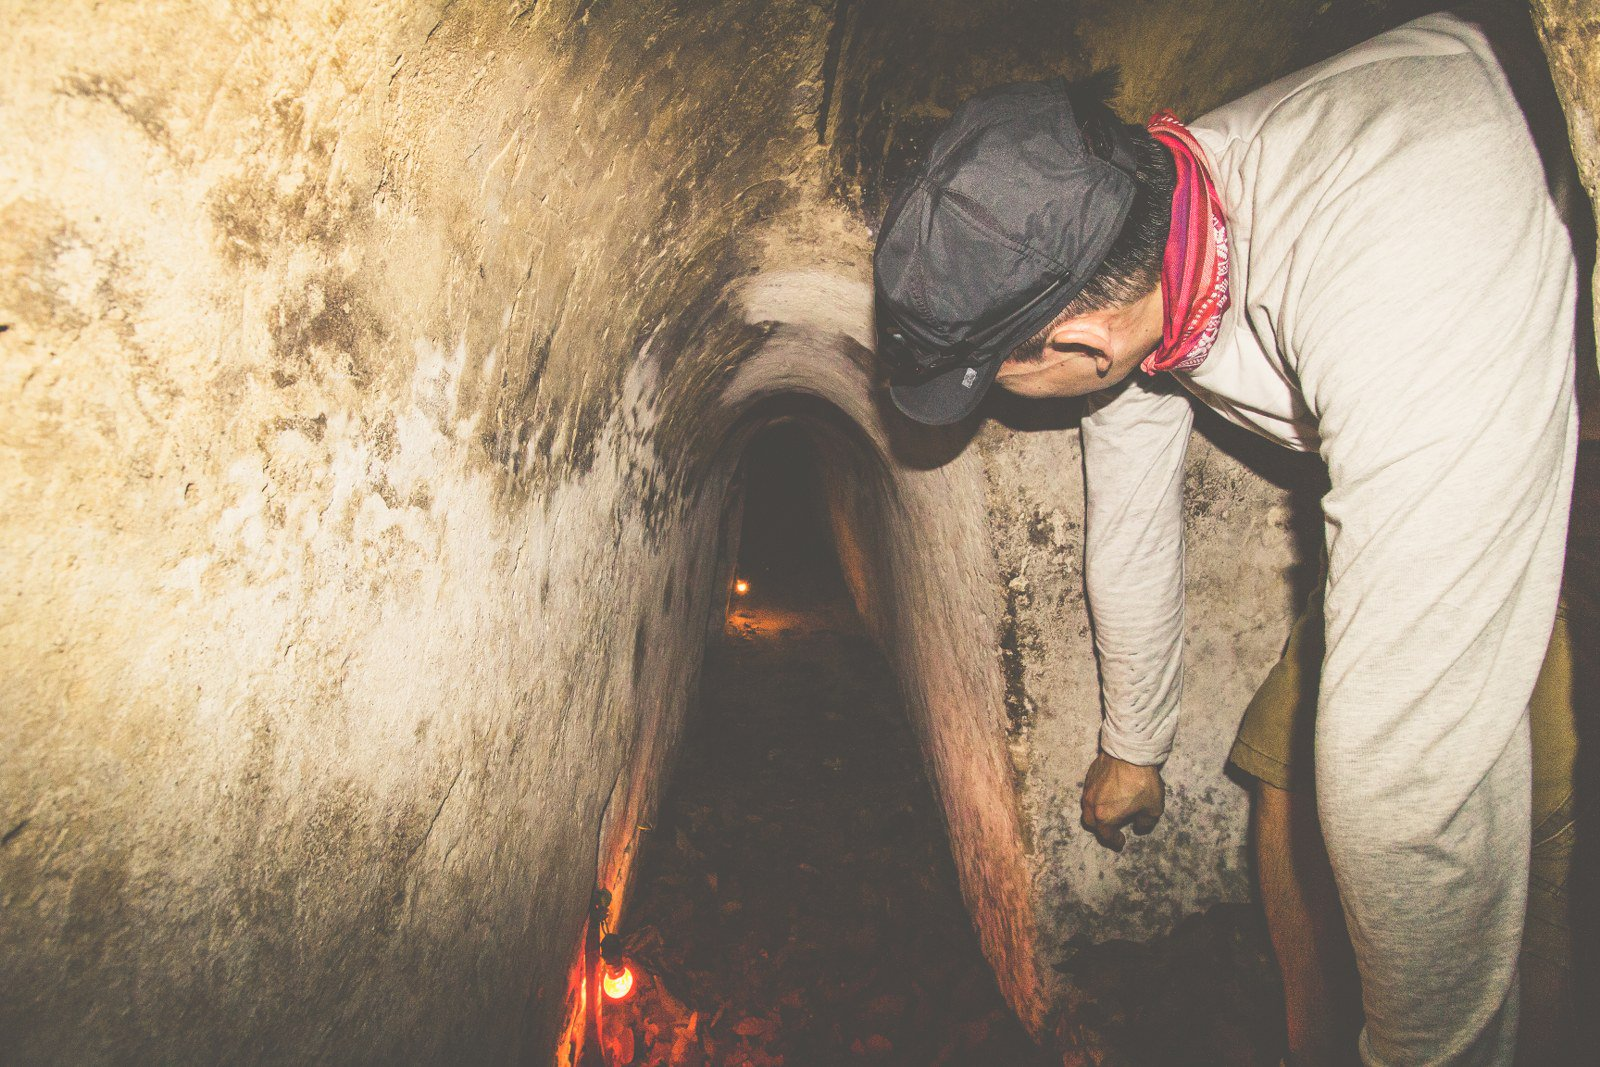 A Complete Guide to the Cu Chi Tunnels (Including Tips & Tricks!)